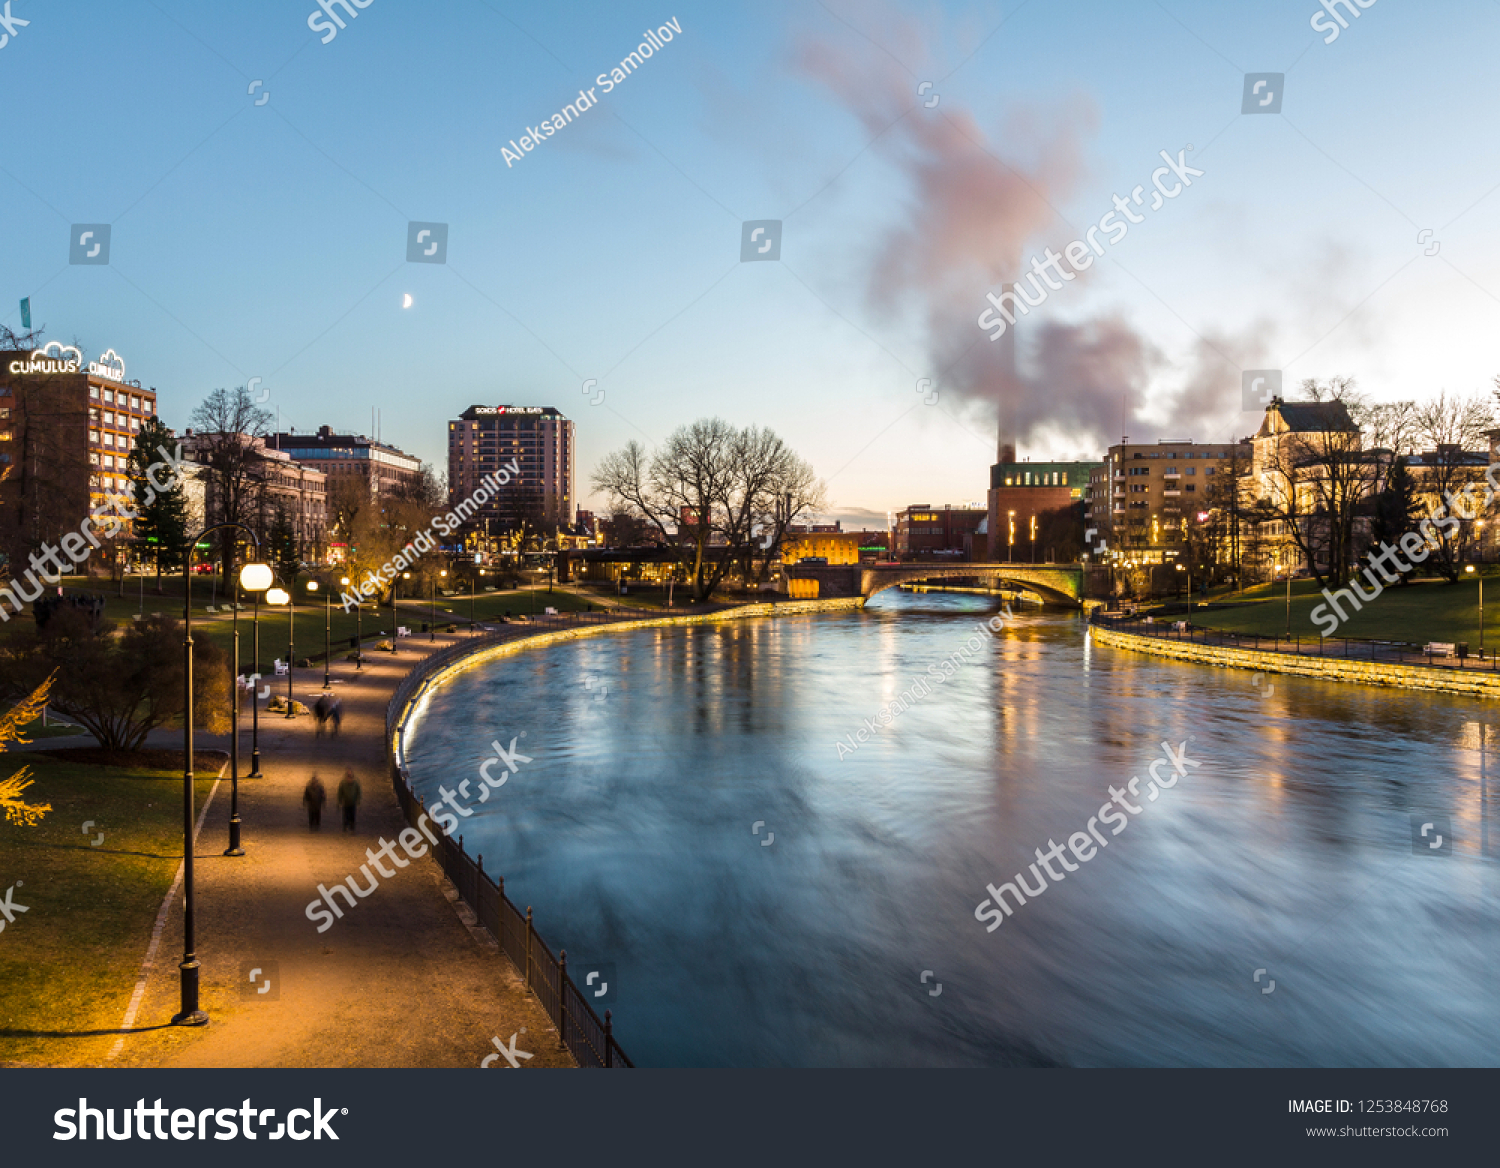 stock-photo-tampere-finland-tammerkoski-